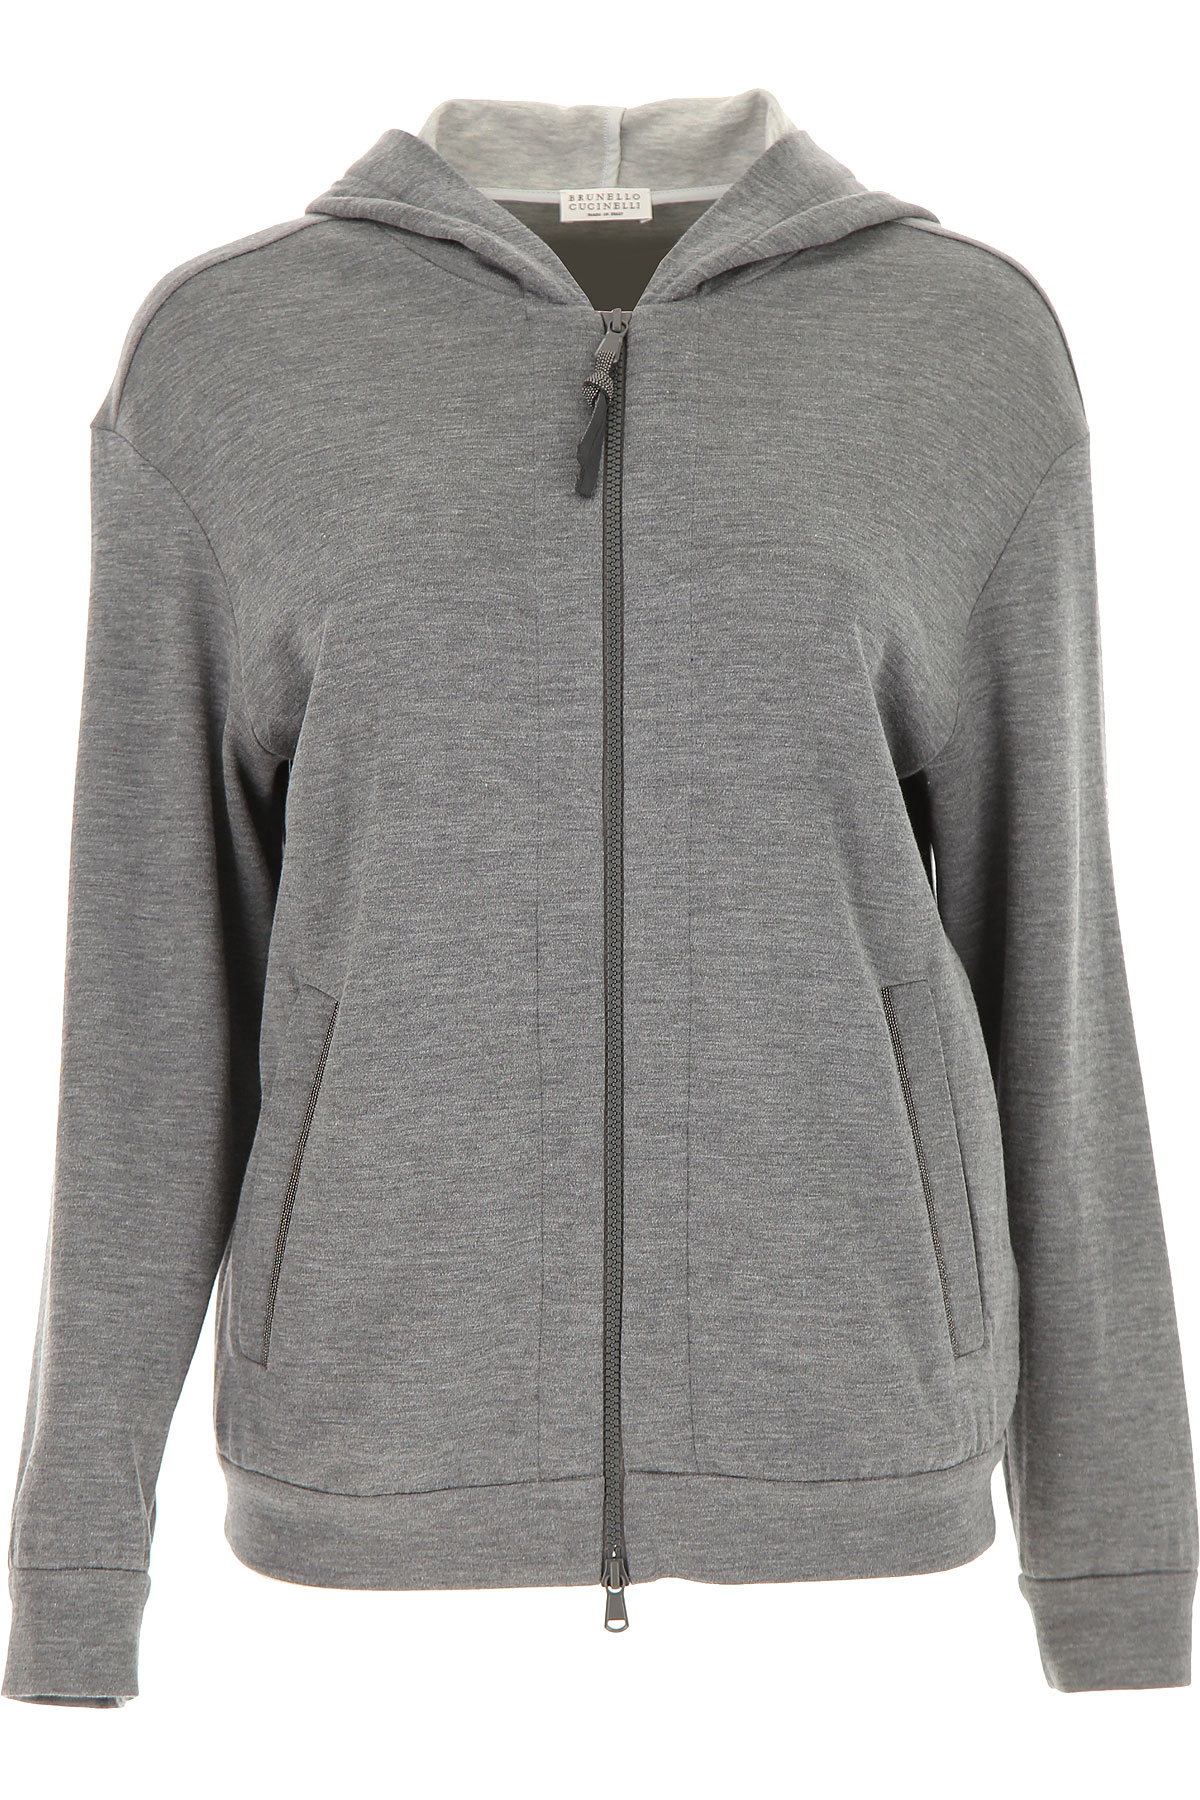 Brunello Cucinelli Sweatshirt for Women On Sale, Dark Grey, Cotton, 2019, 4 6